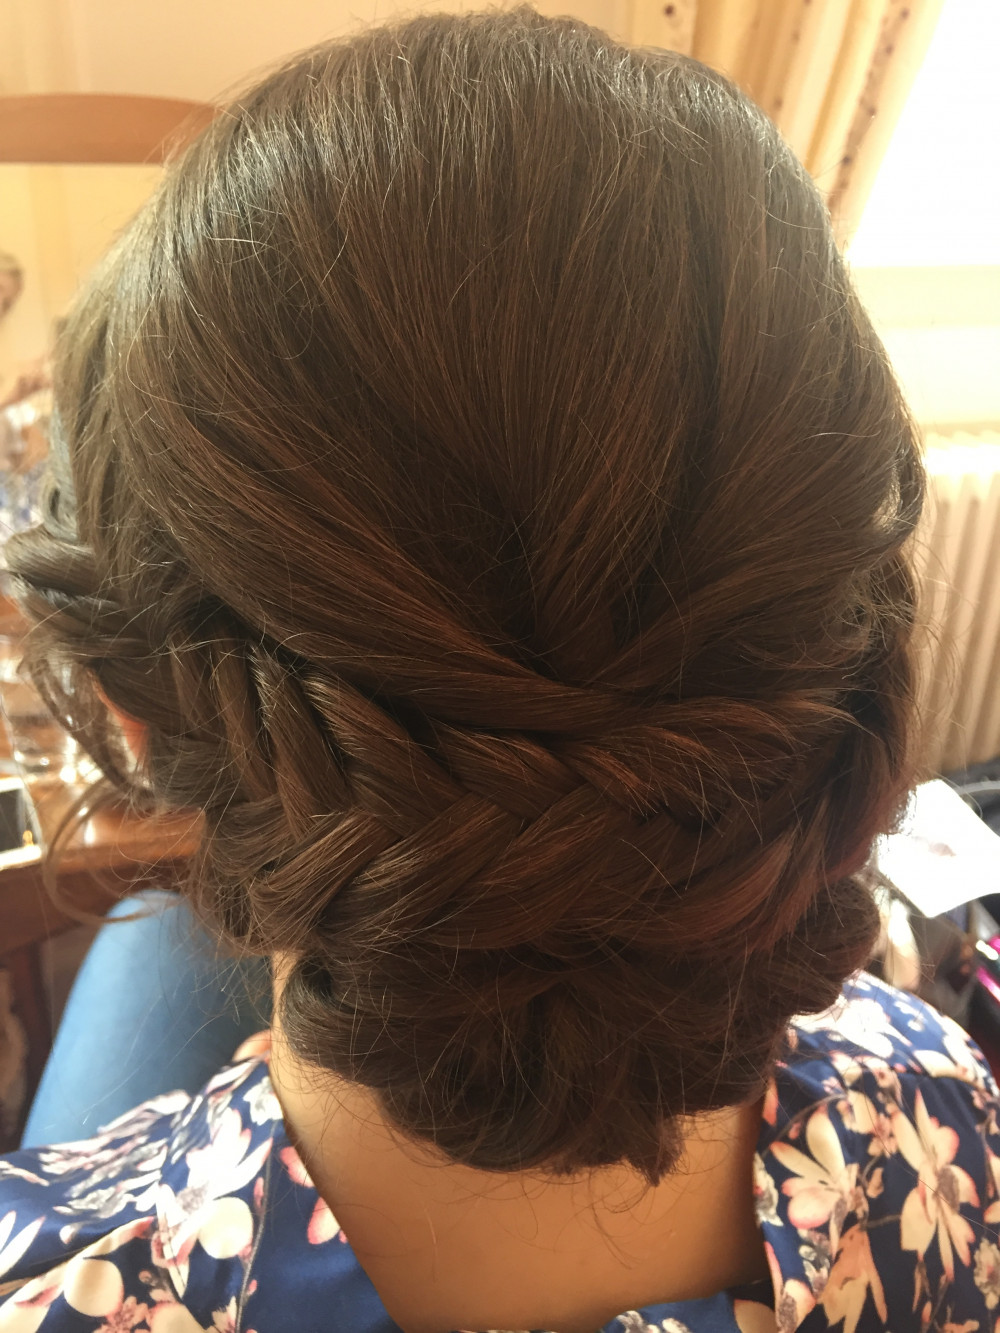 Braids on Braids - Make Me Bridal Artist: Kent Bridal Hair.